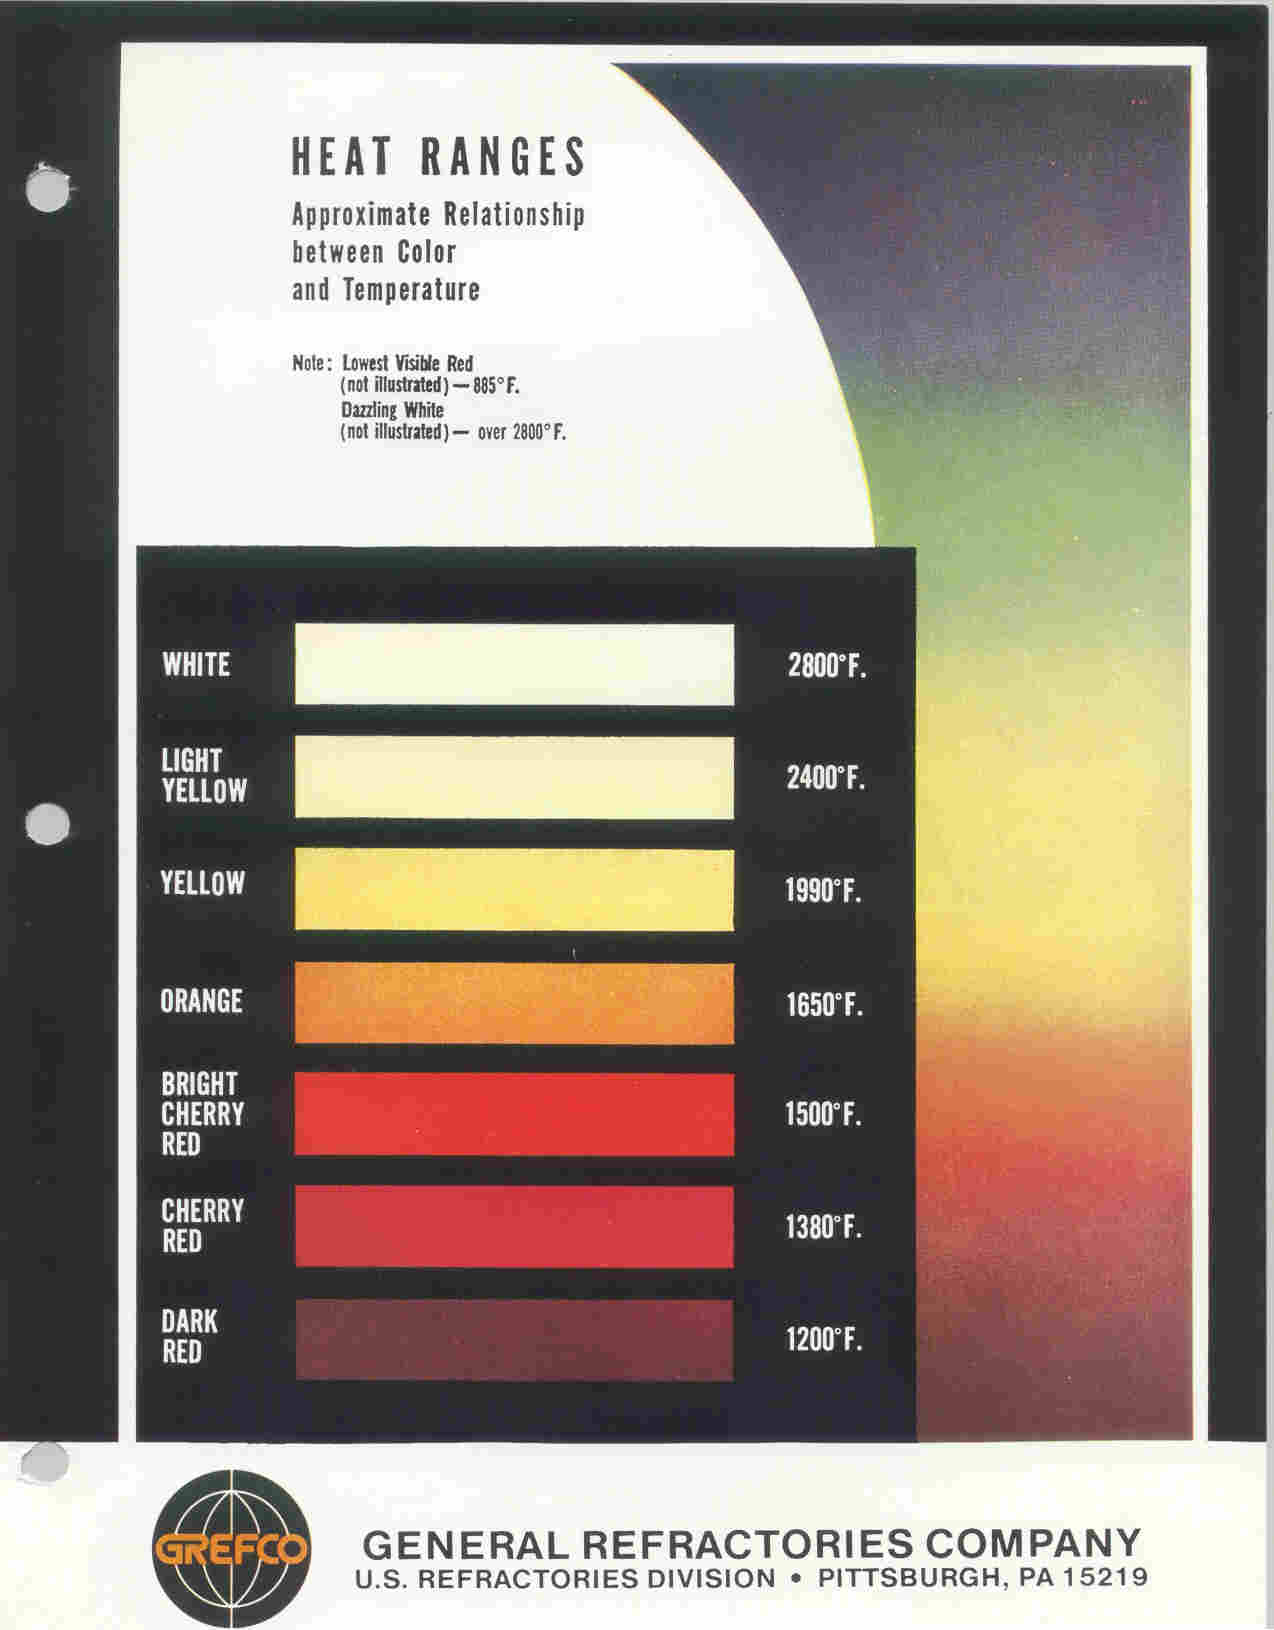 About refractory color vs refractory temperature chart nvjuhfo Choice Image